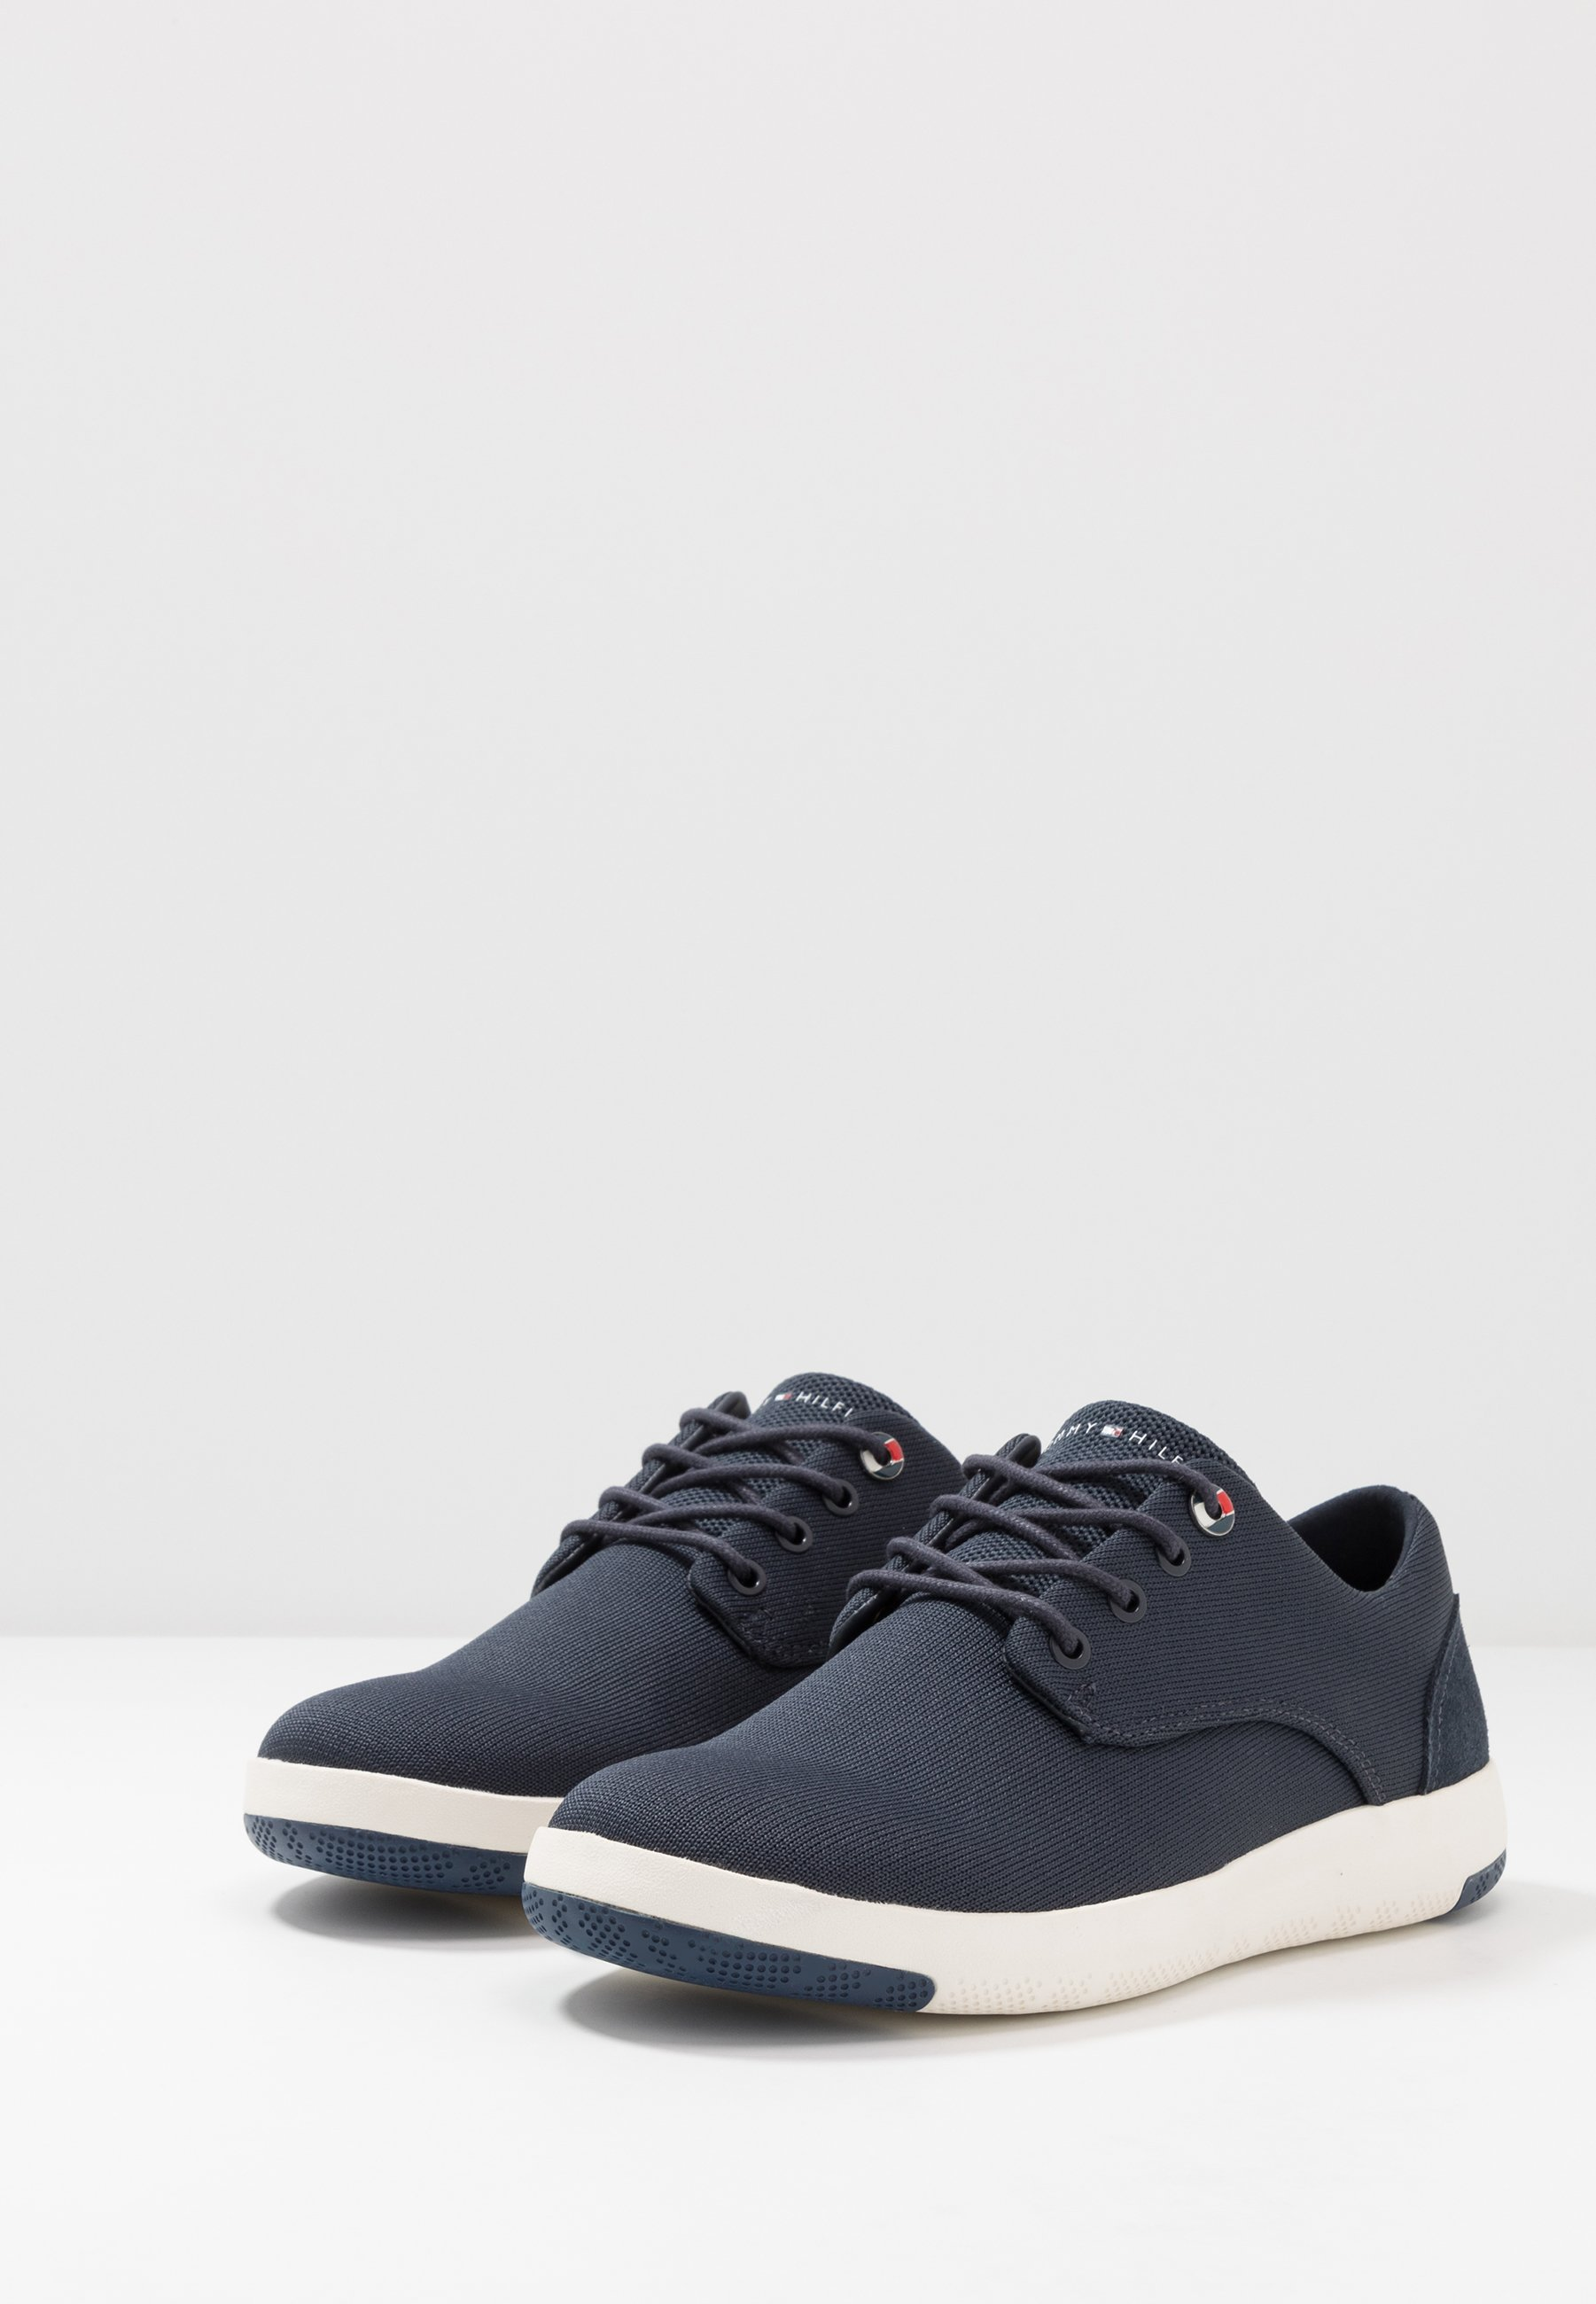 Tommy Hilfiger Lightweight Lace Up Shoe - Sneakers Blue